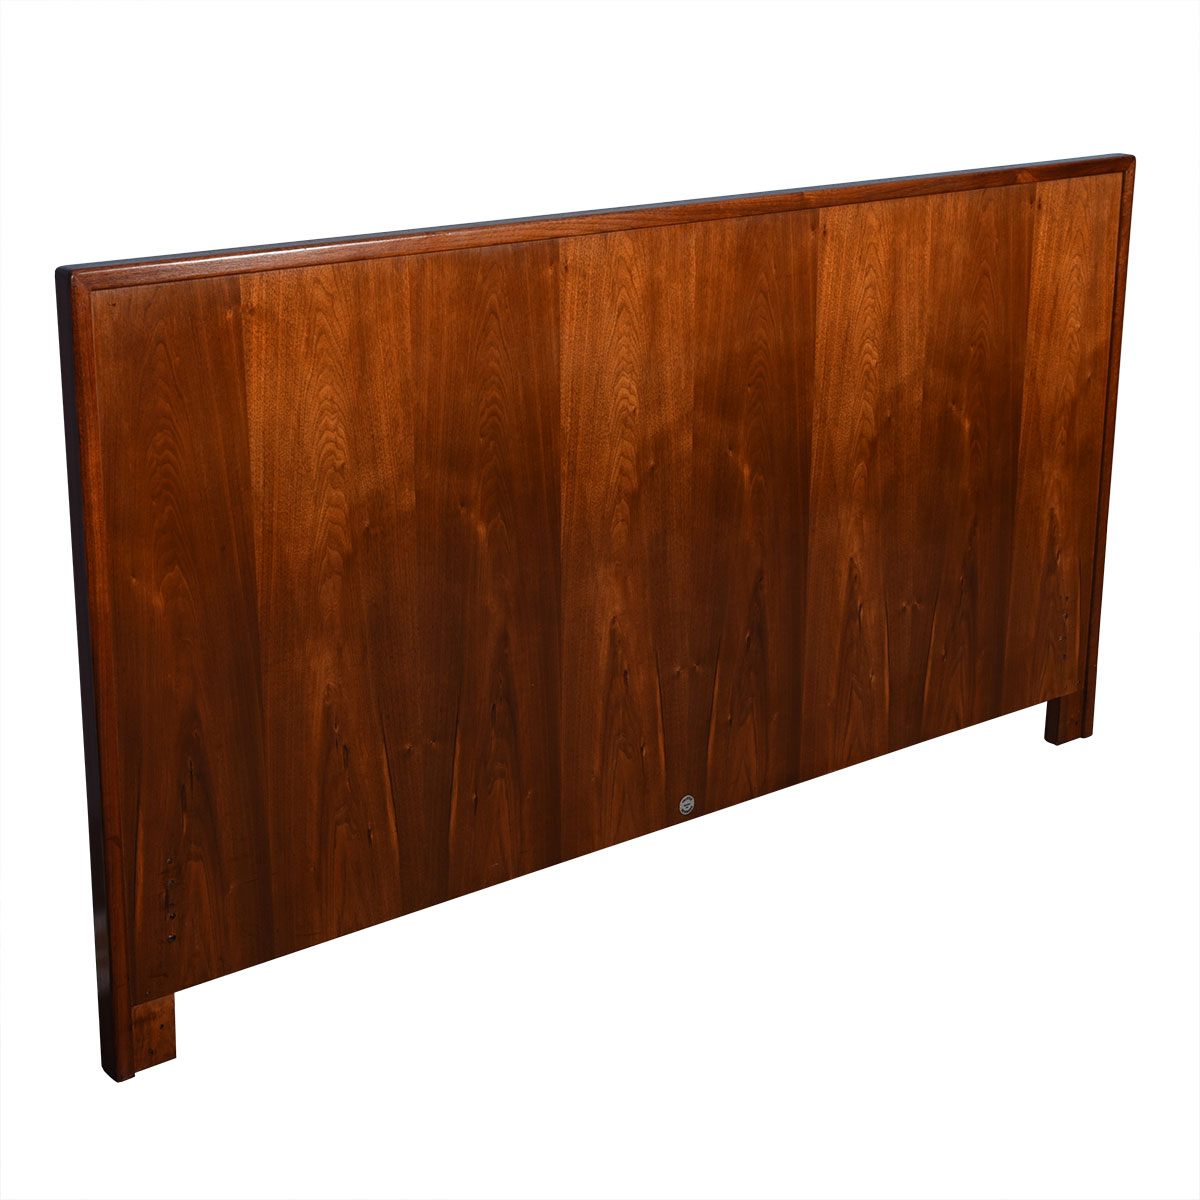 Danish Queen-Sized Walnut Headboard by Falster